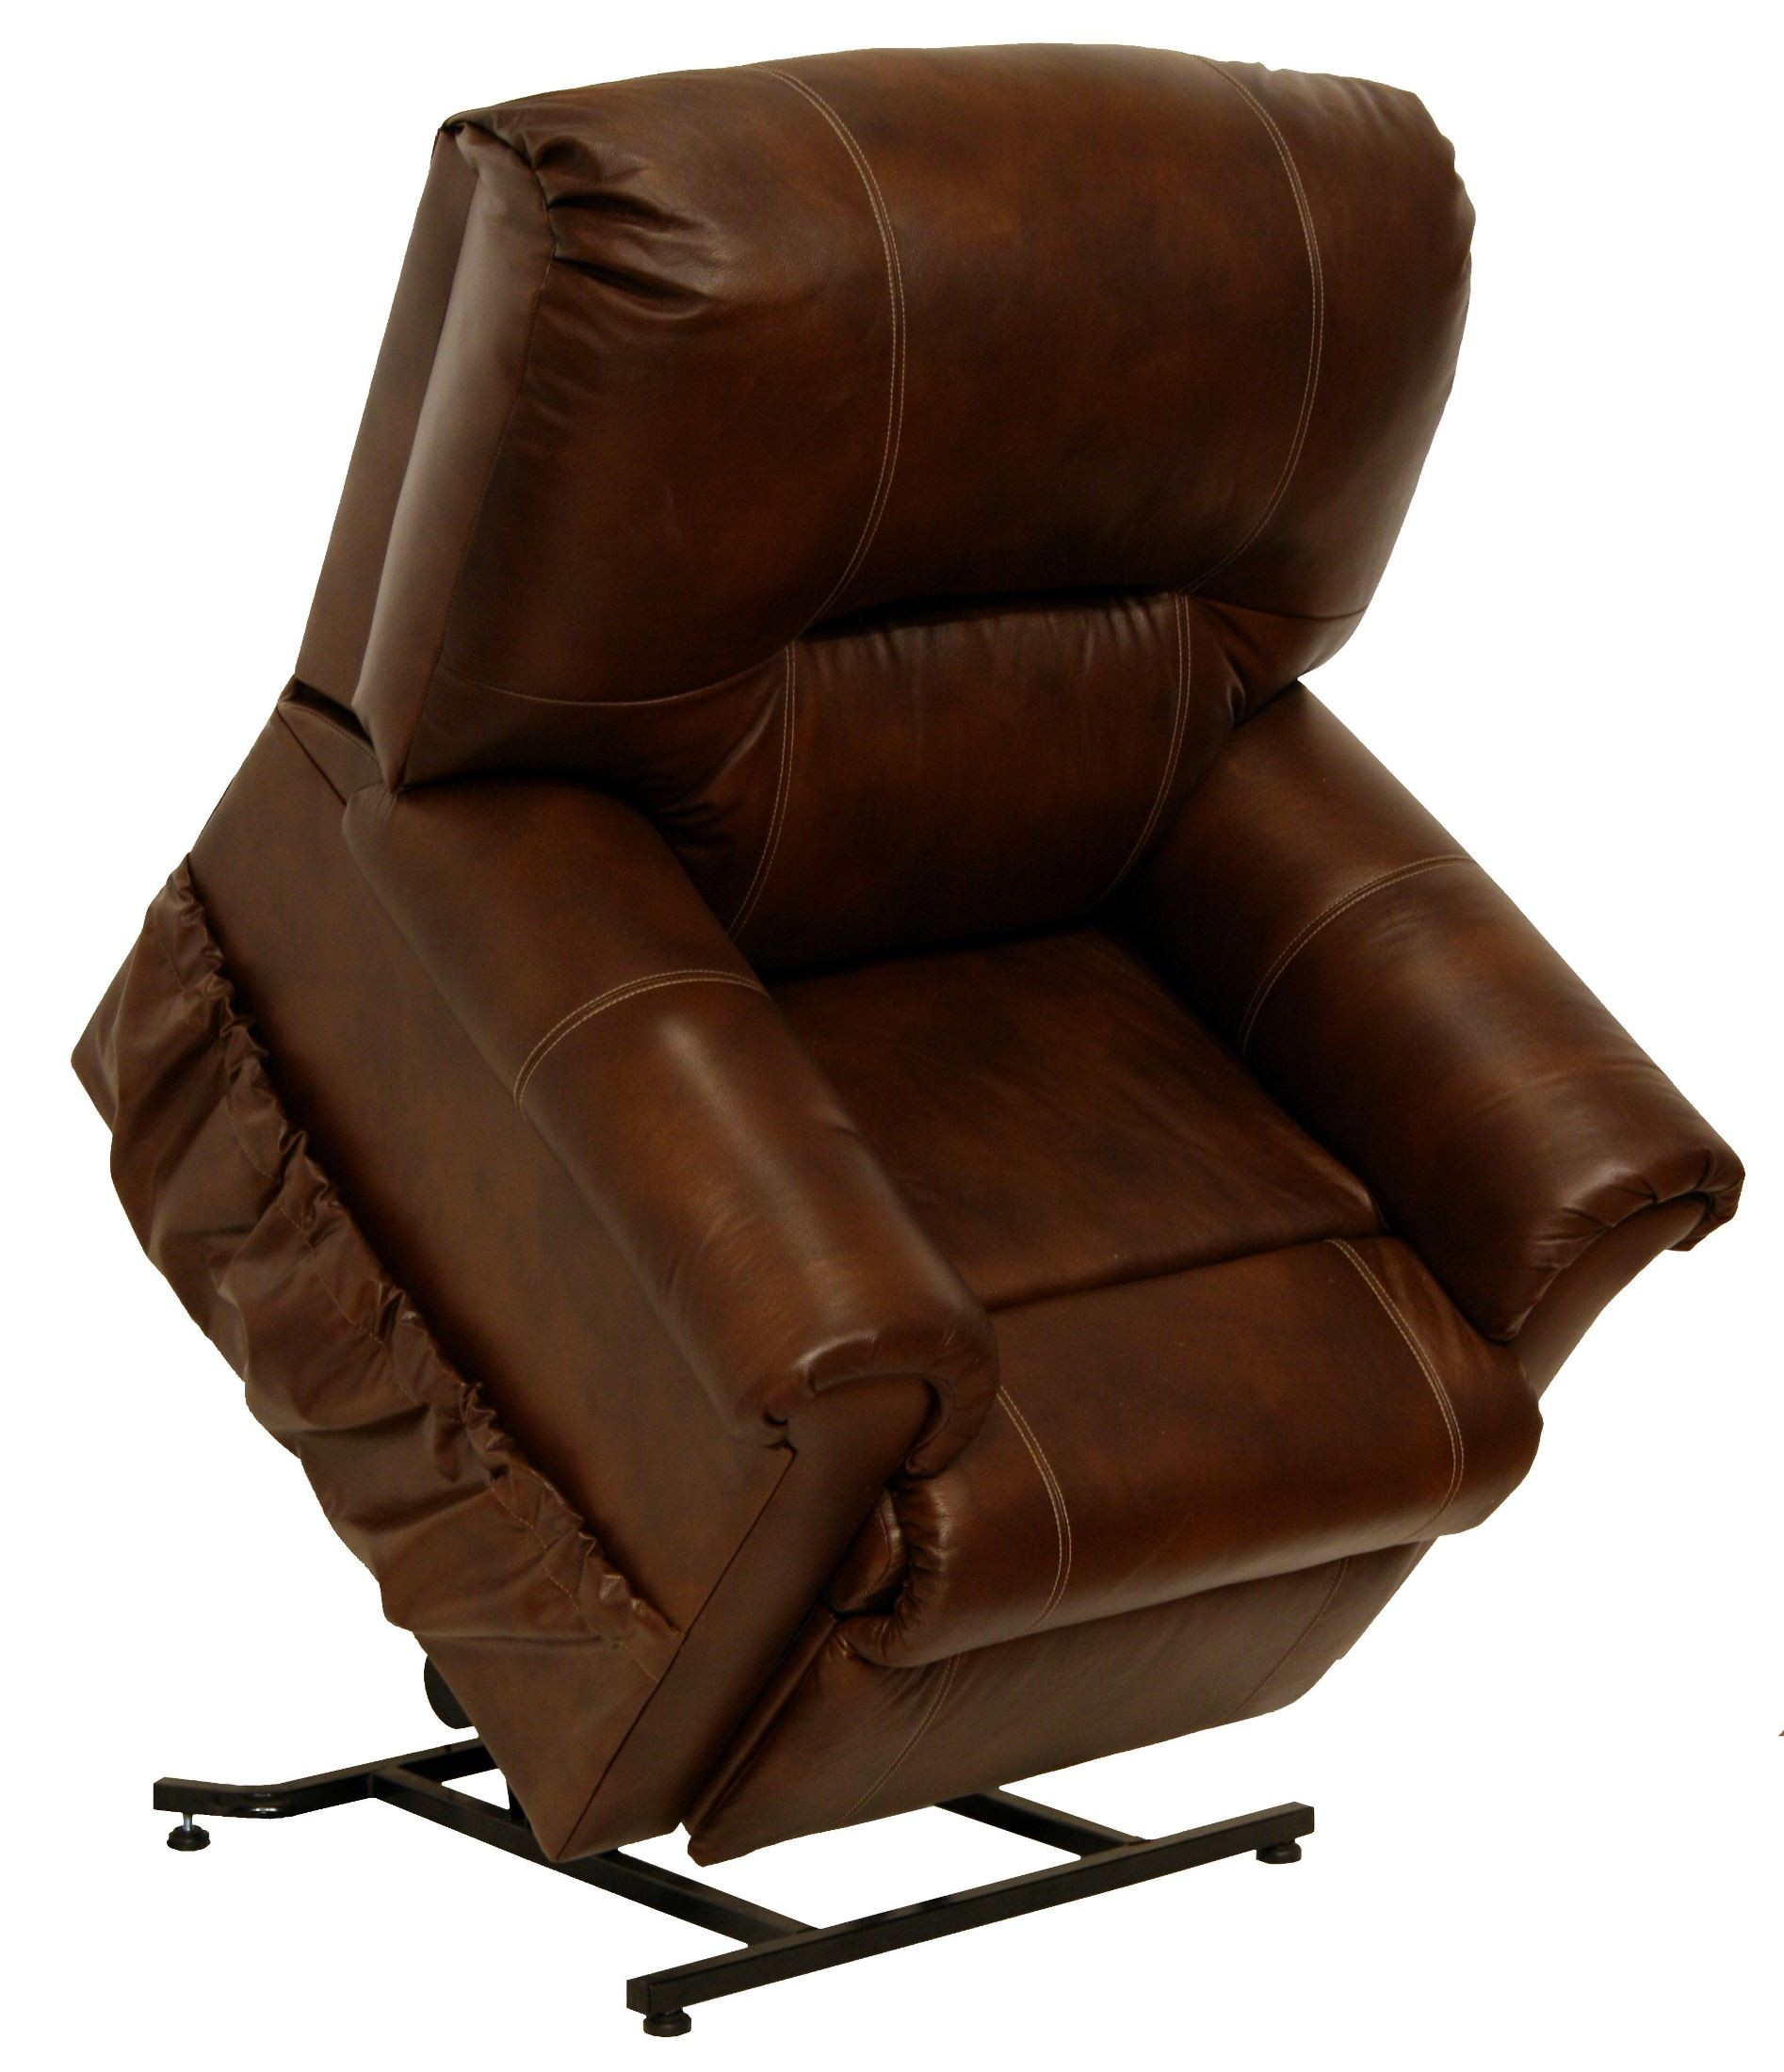 Lift Chairs Recliners Vintage Tobacco Leather Power Lift Chair From Catnapper